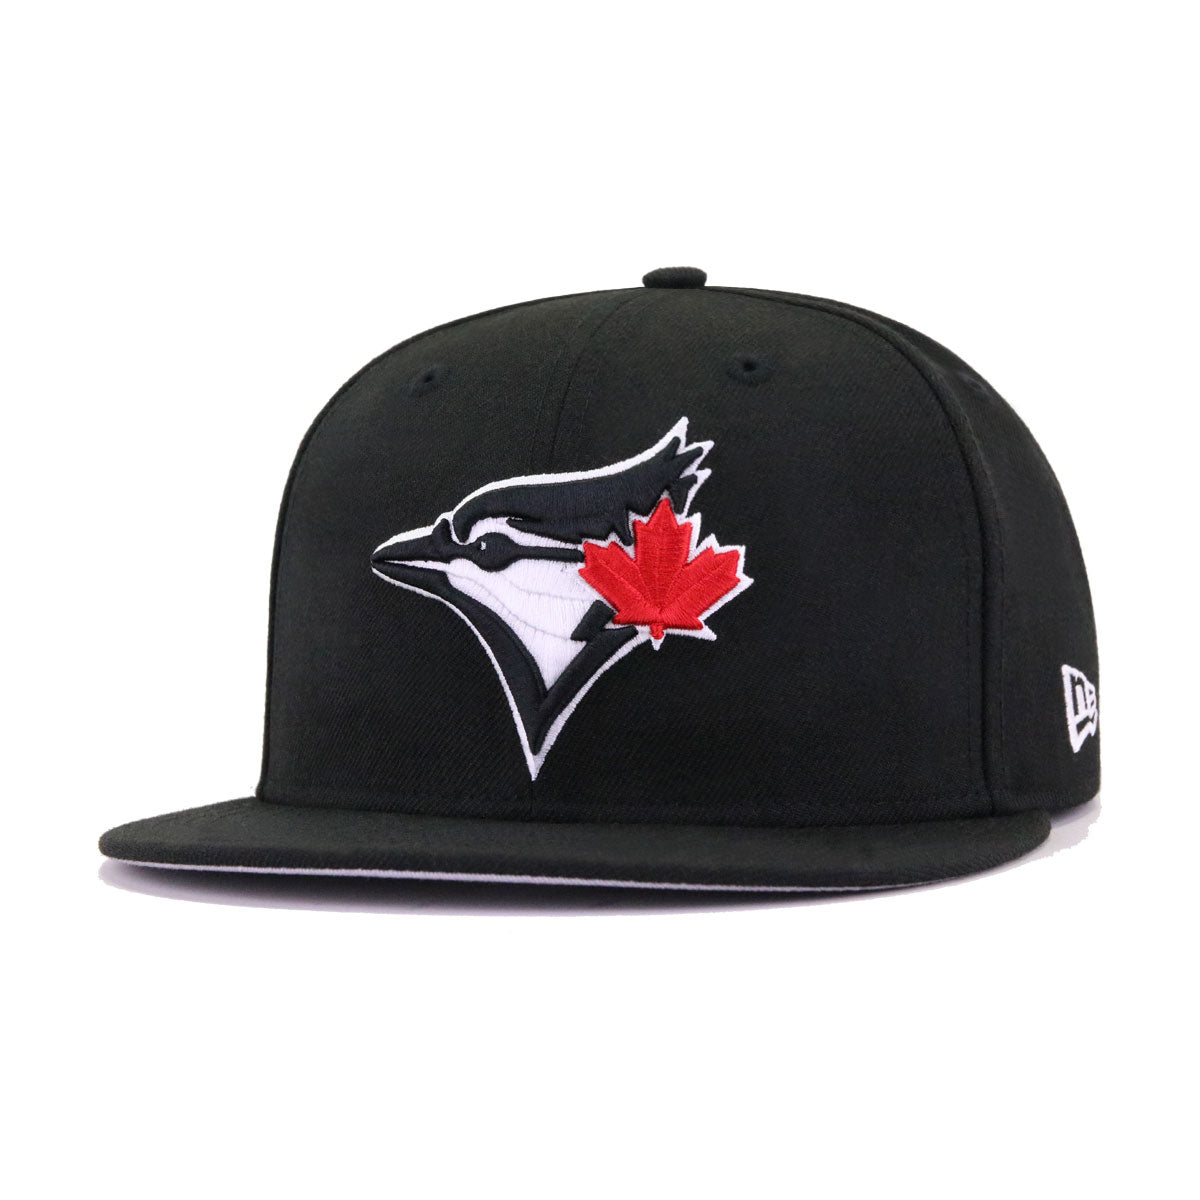 Toronto Blue Jays Black Scarlet New Era 9Fifty Snapback